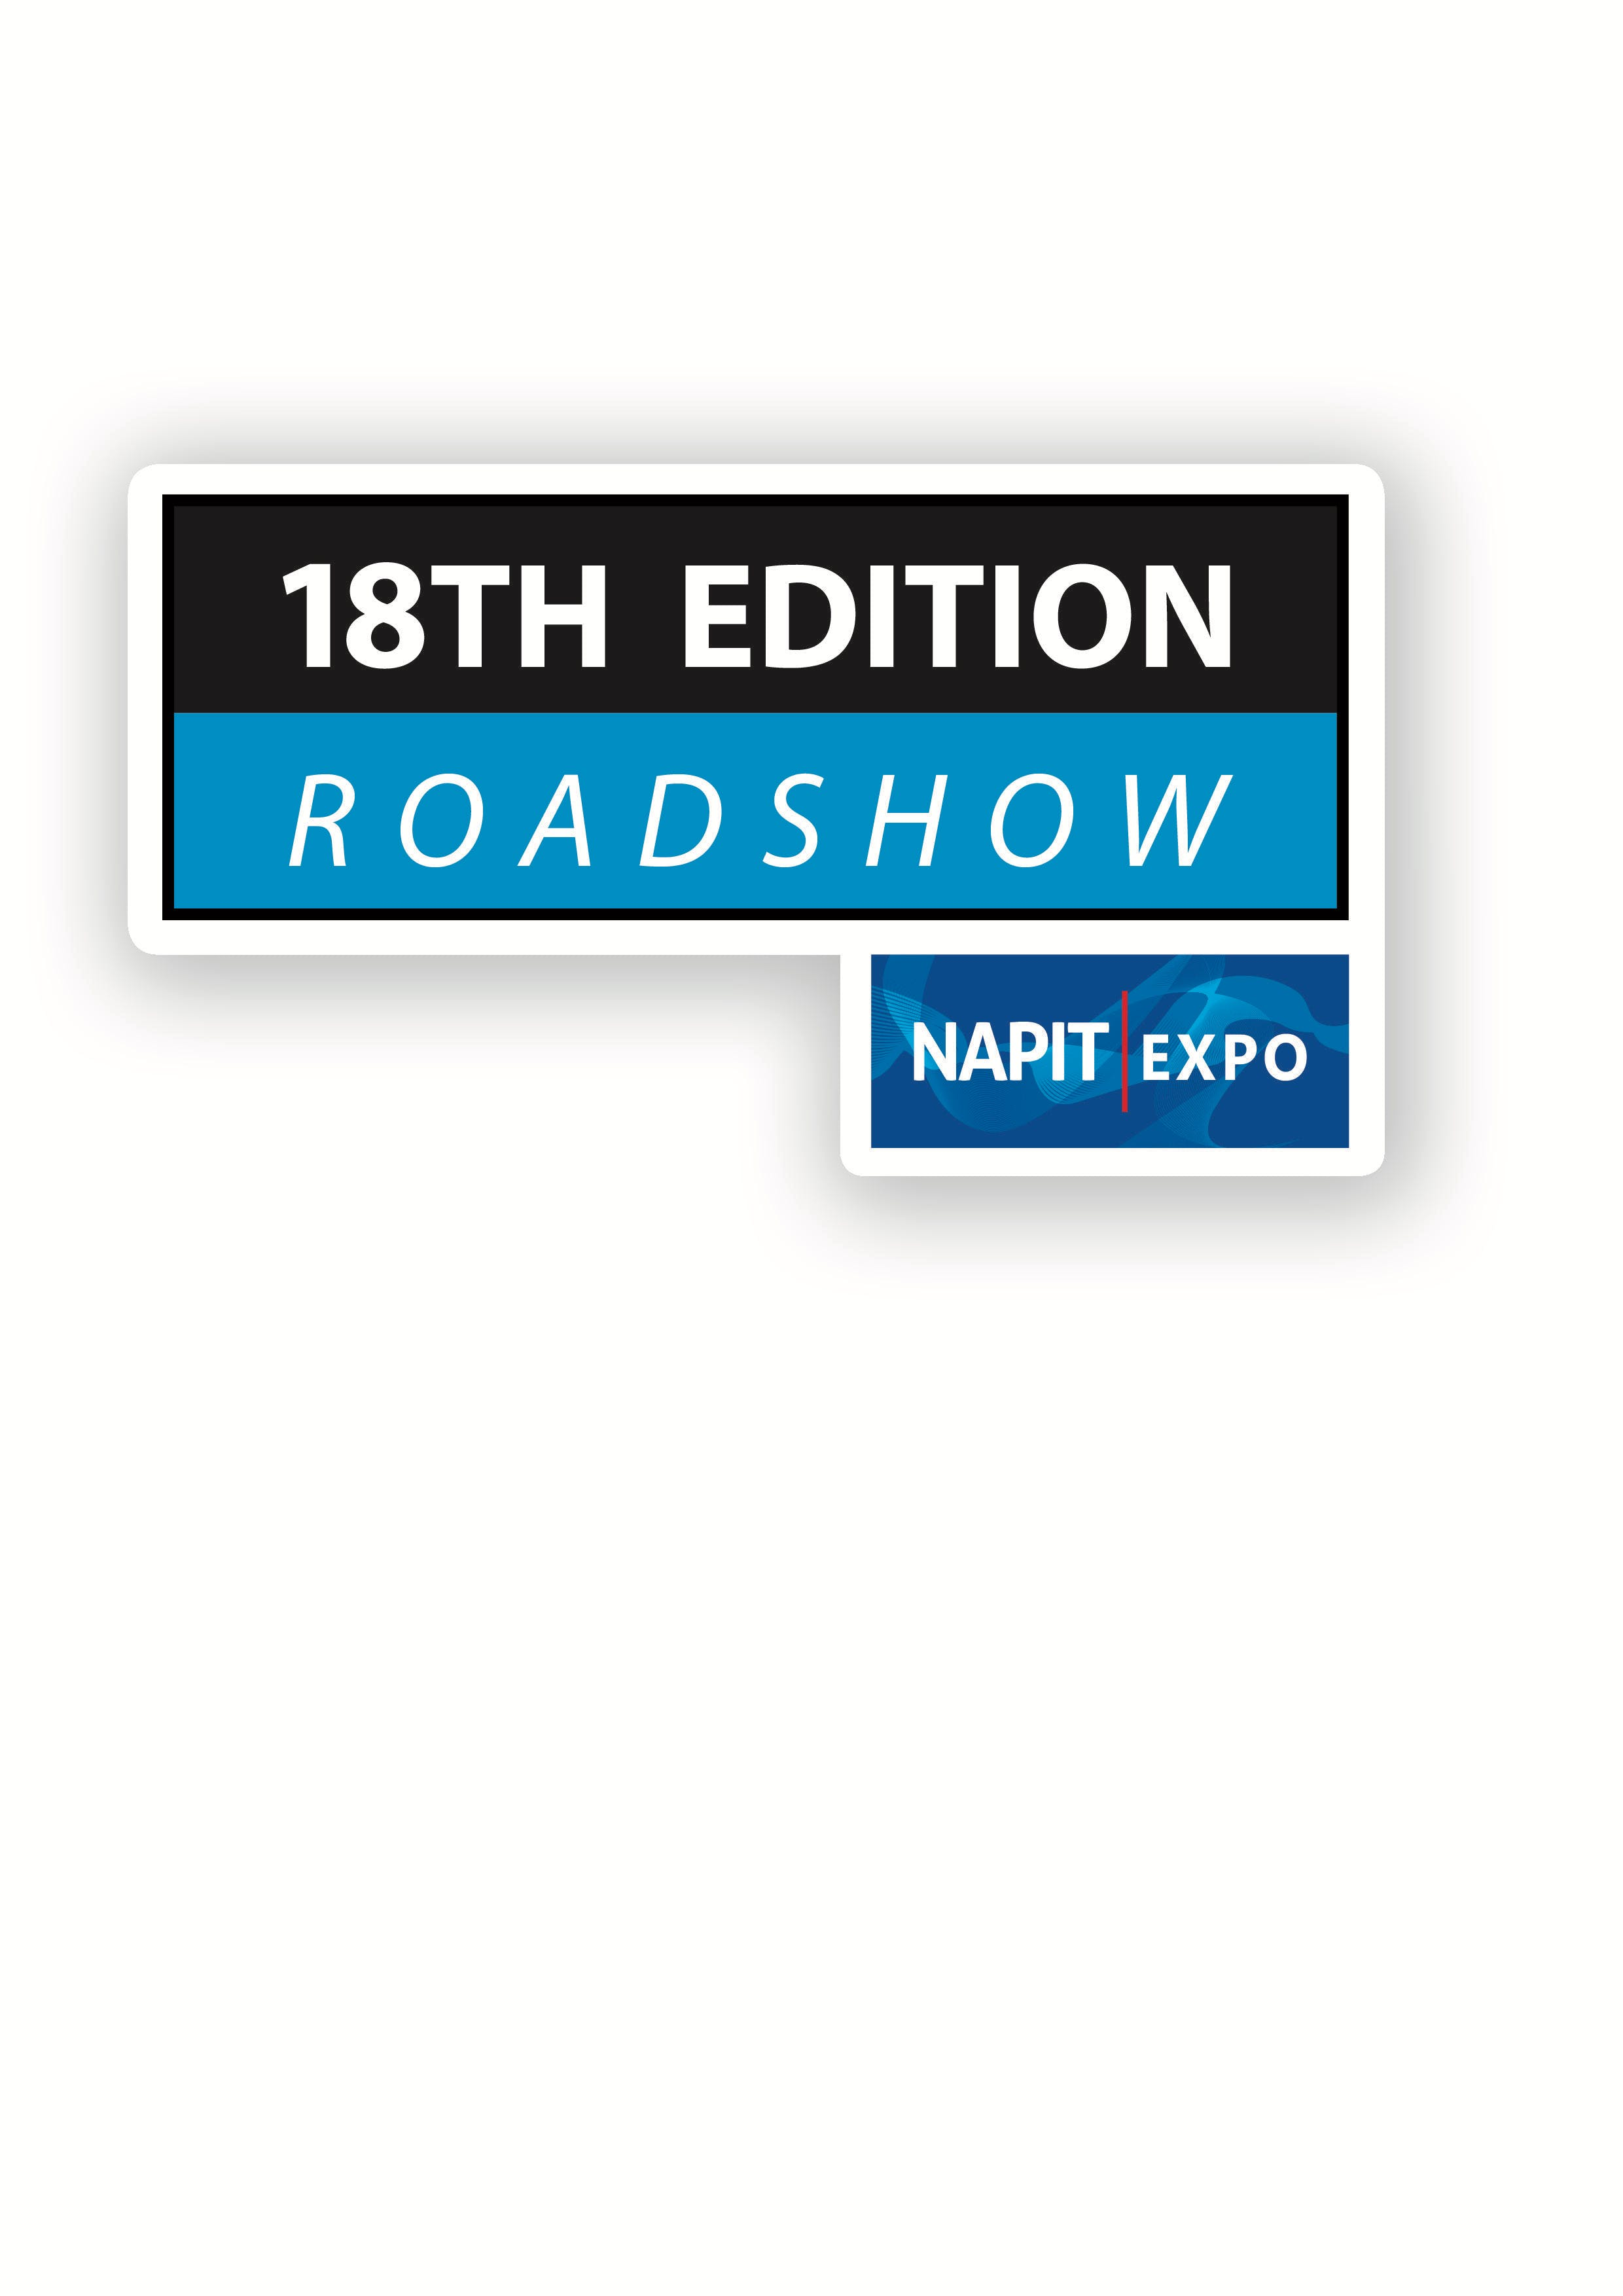 NAPIT EXPO 18th Edition Roadshow - LEICESTER